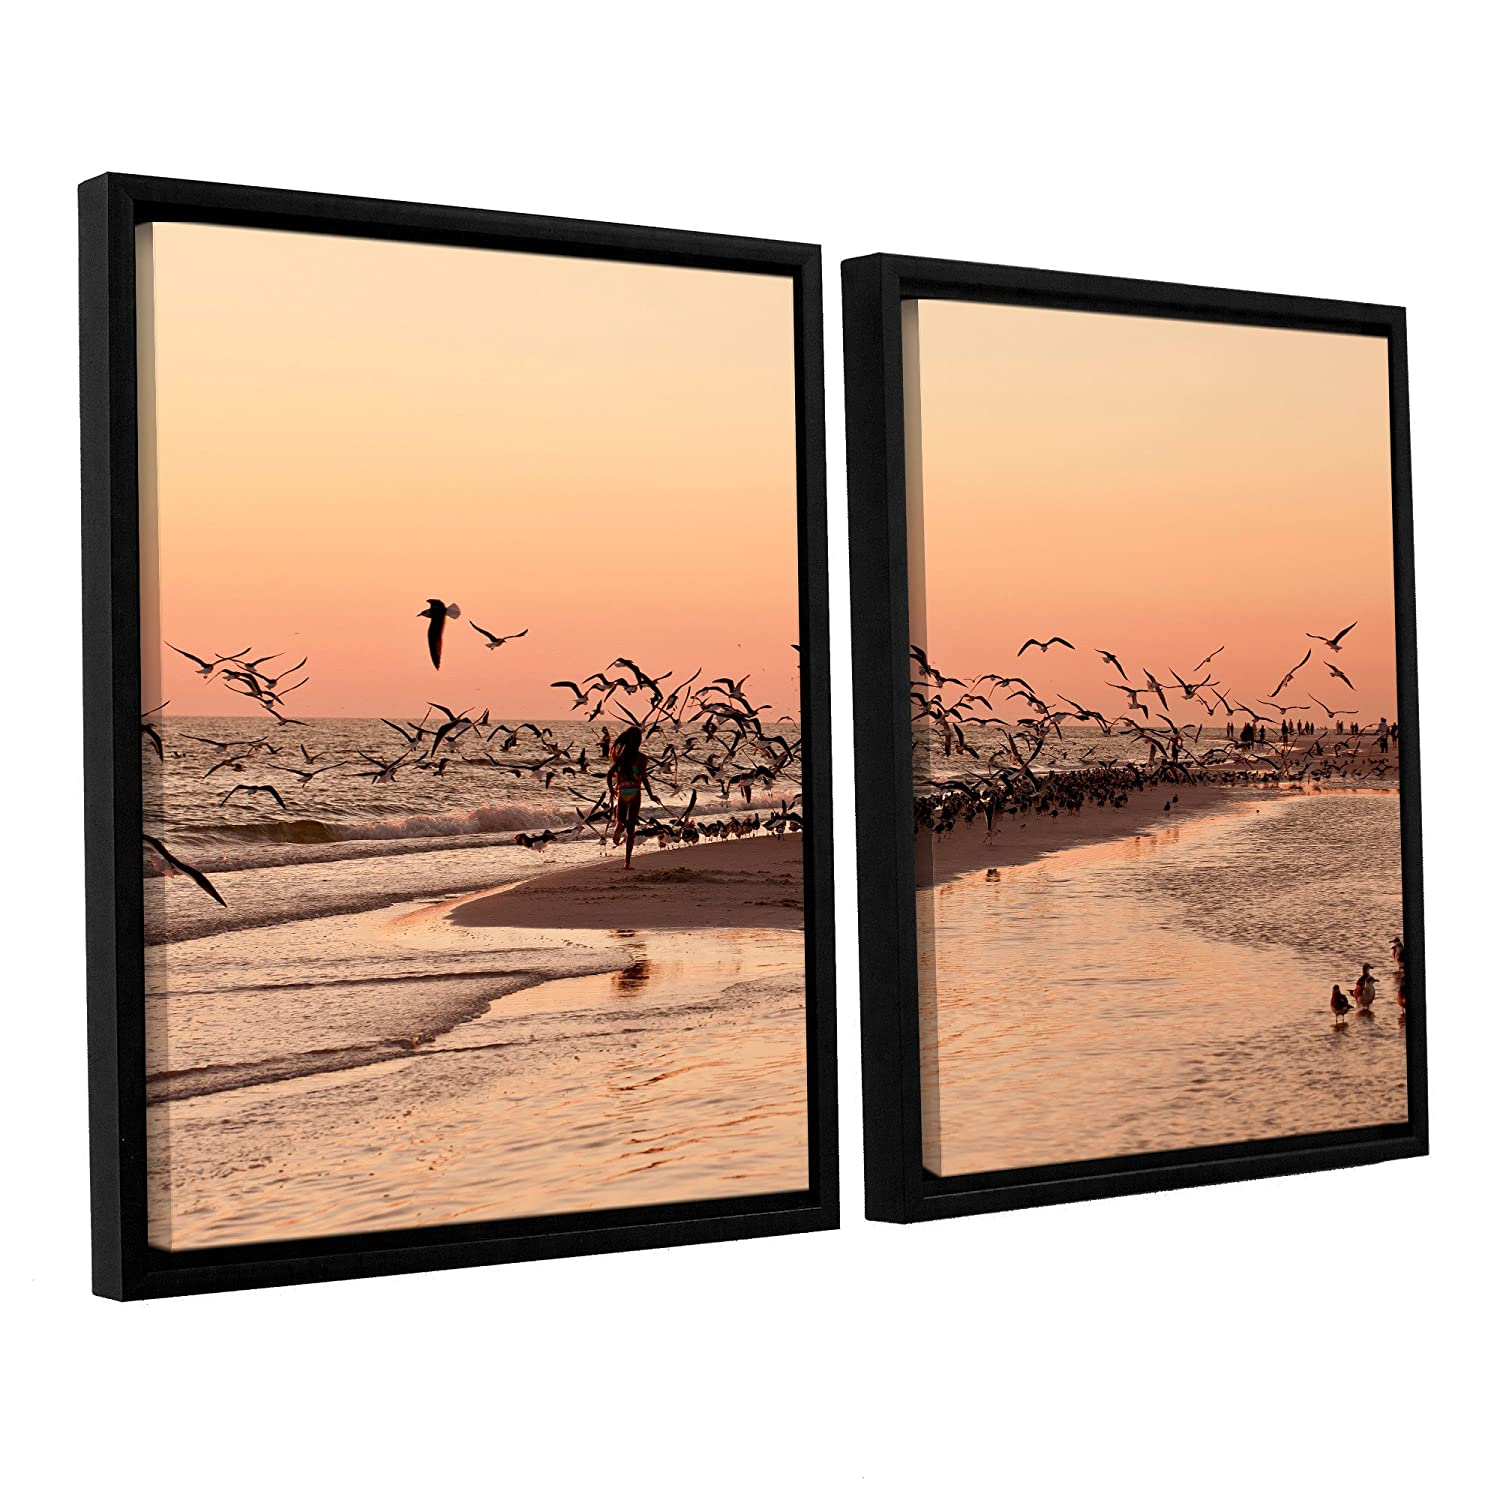 ArtWall Lindsey Janich More 2 Piece Floater Framed Canvas Artwork 32 by 48